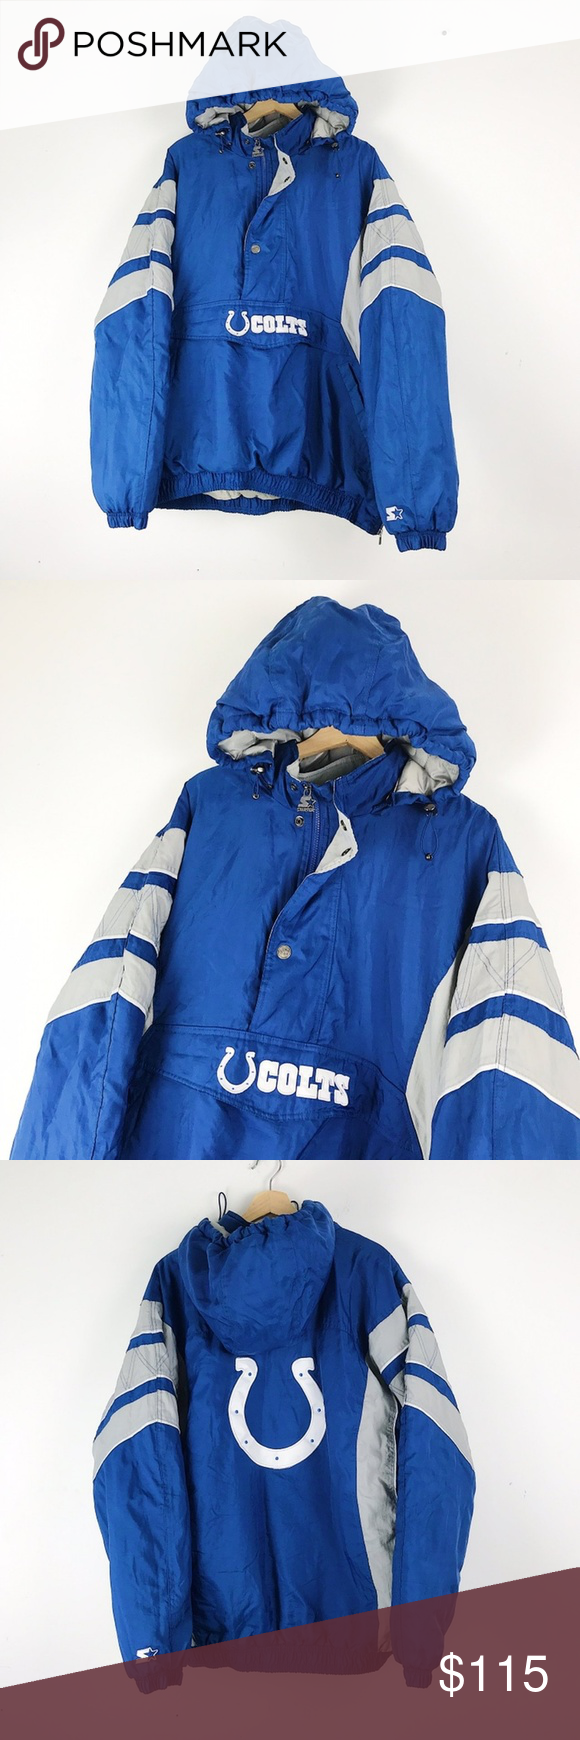 Indianapolis Colts Nfl Football Starter Jacket Xxl 90s Vintage Indianapolis Colts Nfl Pullover Puffy Starter Jacket Lots Nfl Football Indianapolis Colts Nfl